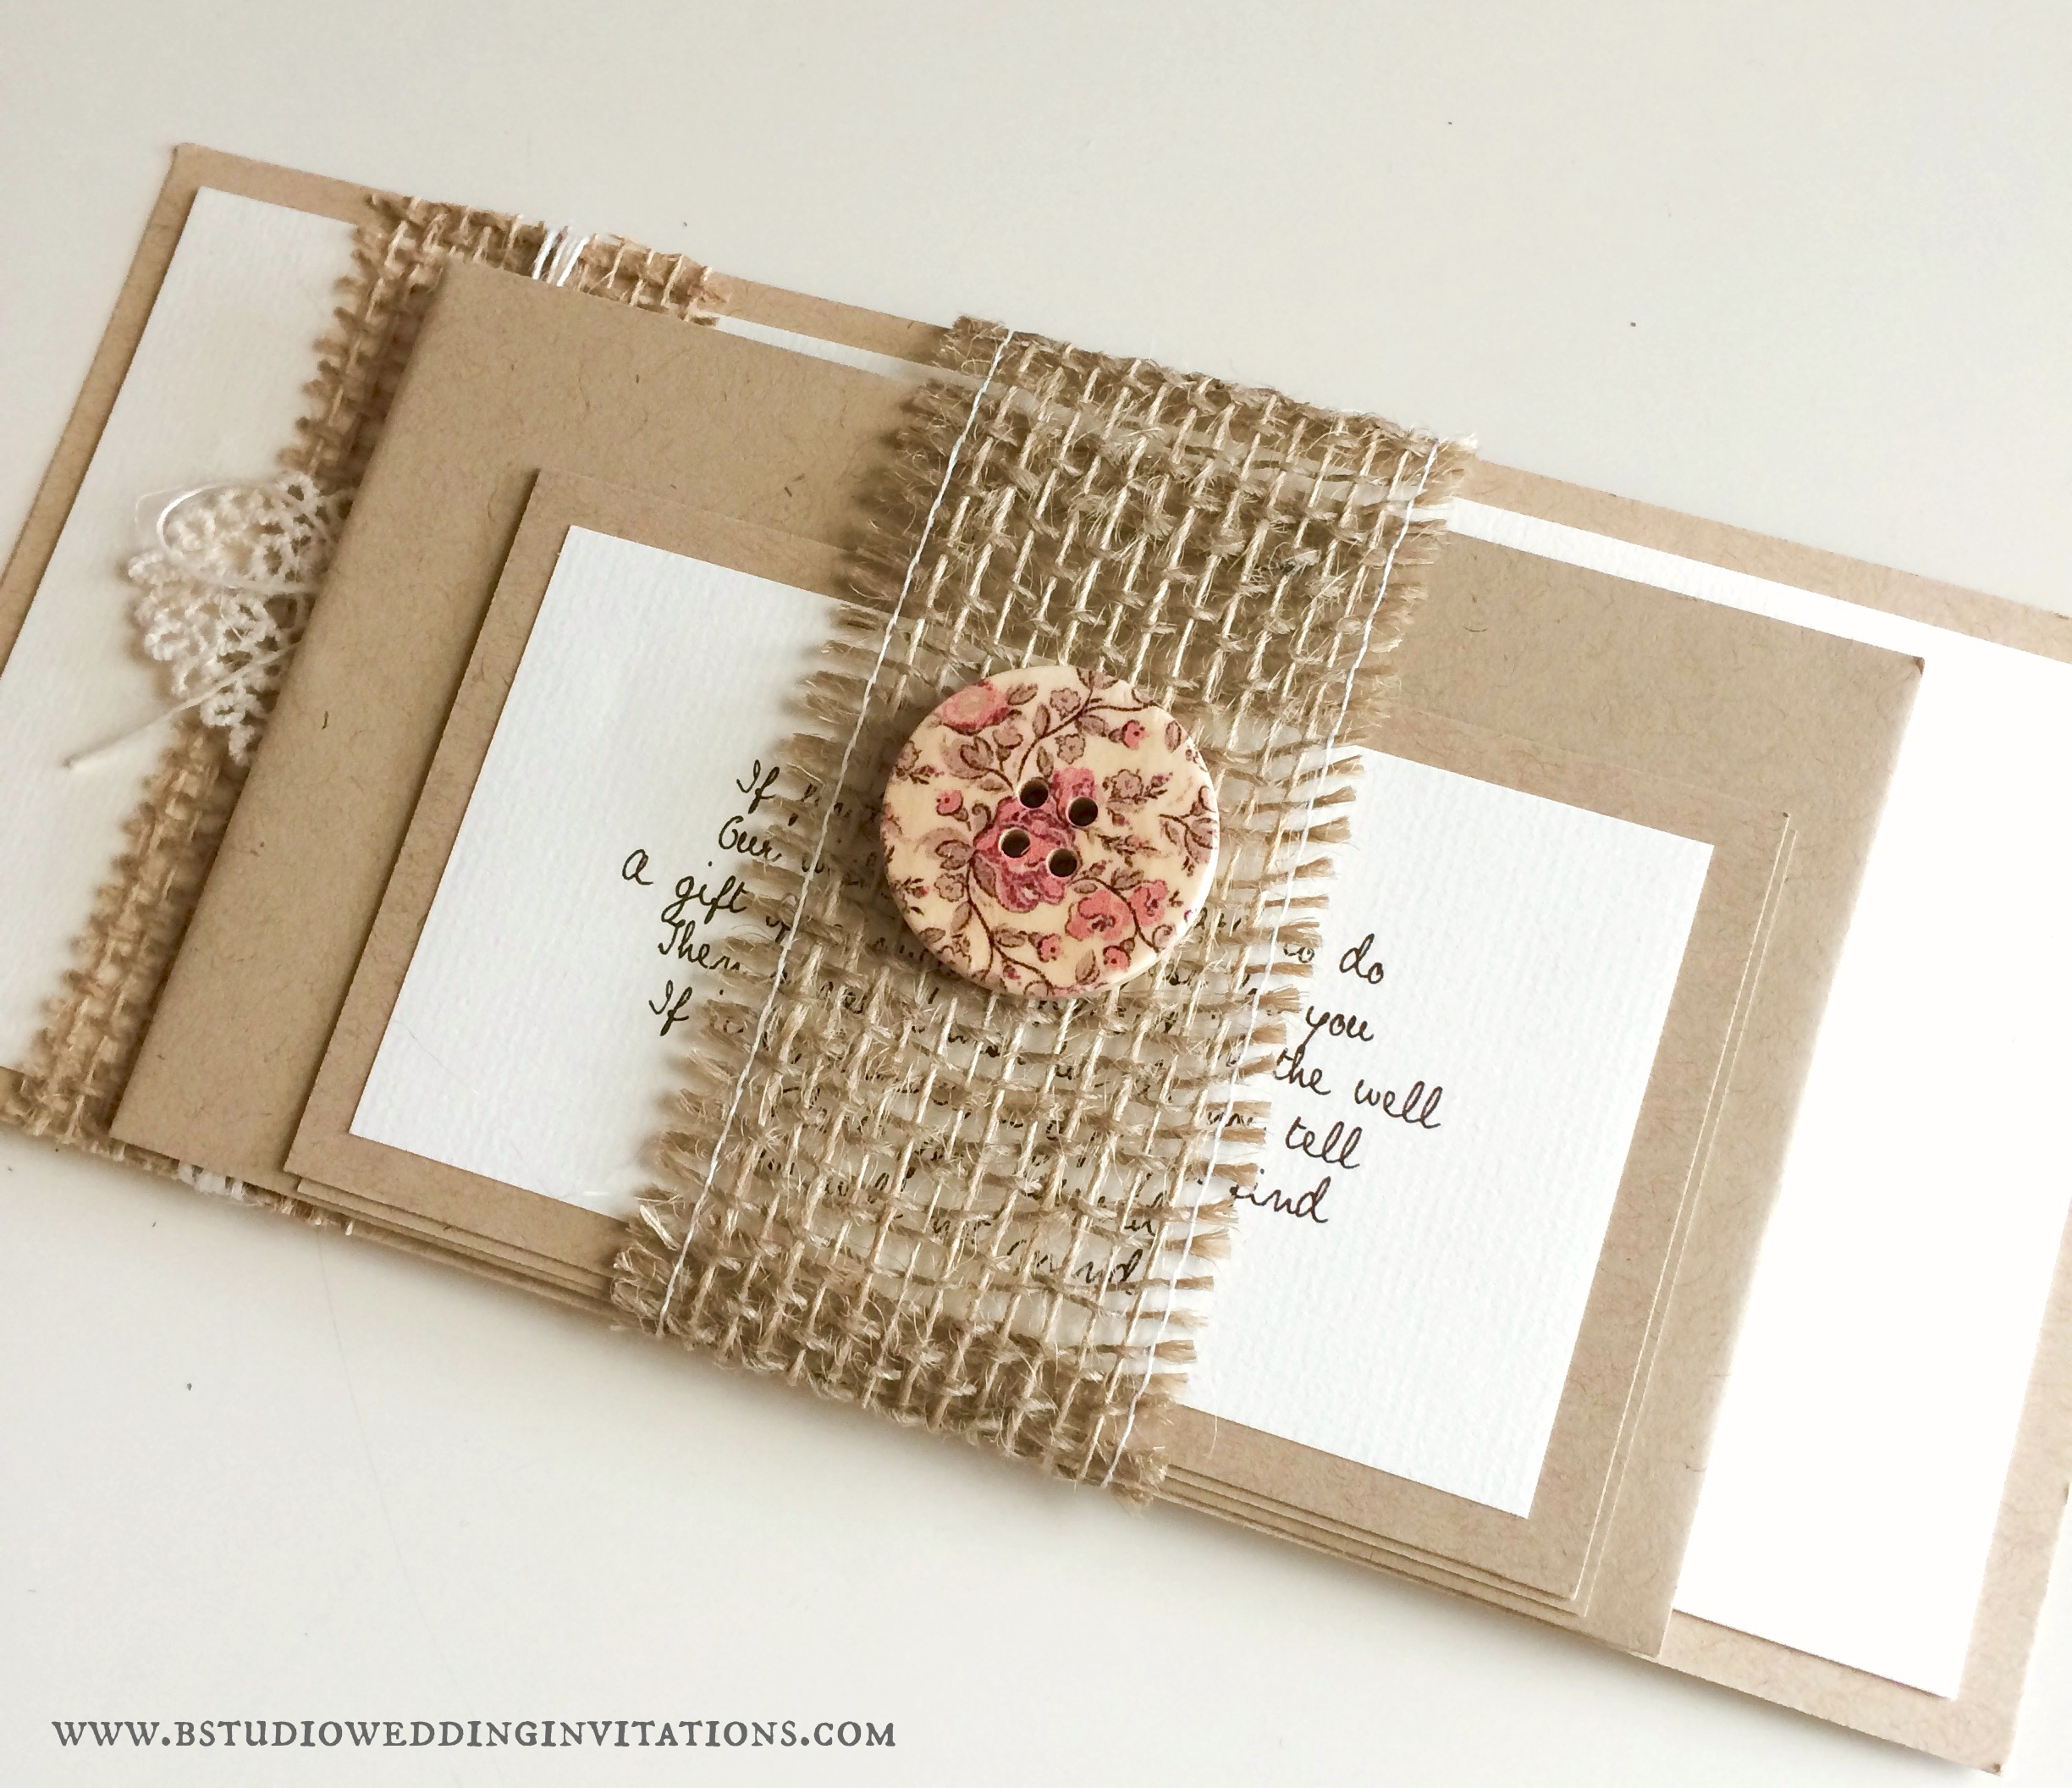 B Studio Wedding Invitations - Style Blog